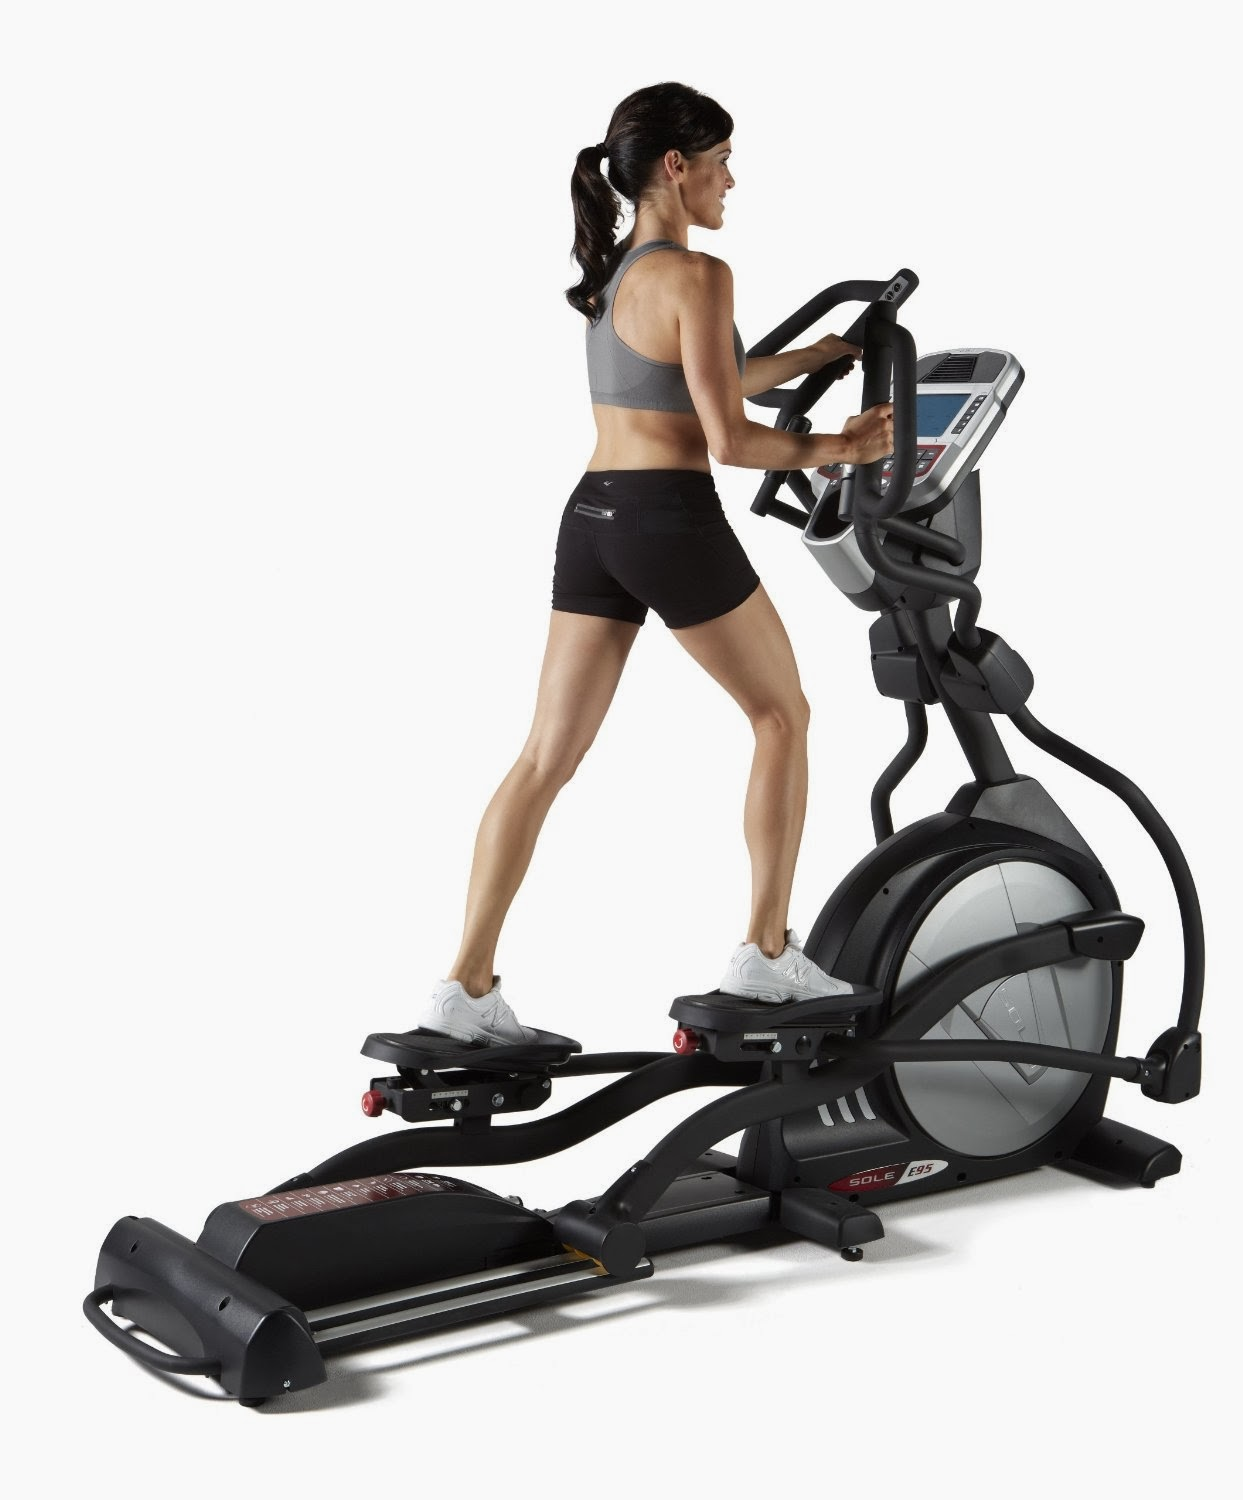 Sole E95 Elliptical Trainer, how to choose the best elliptical trainer for you